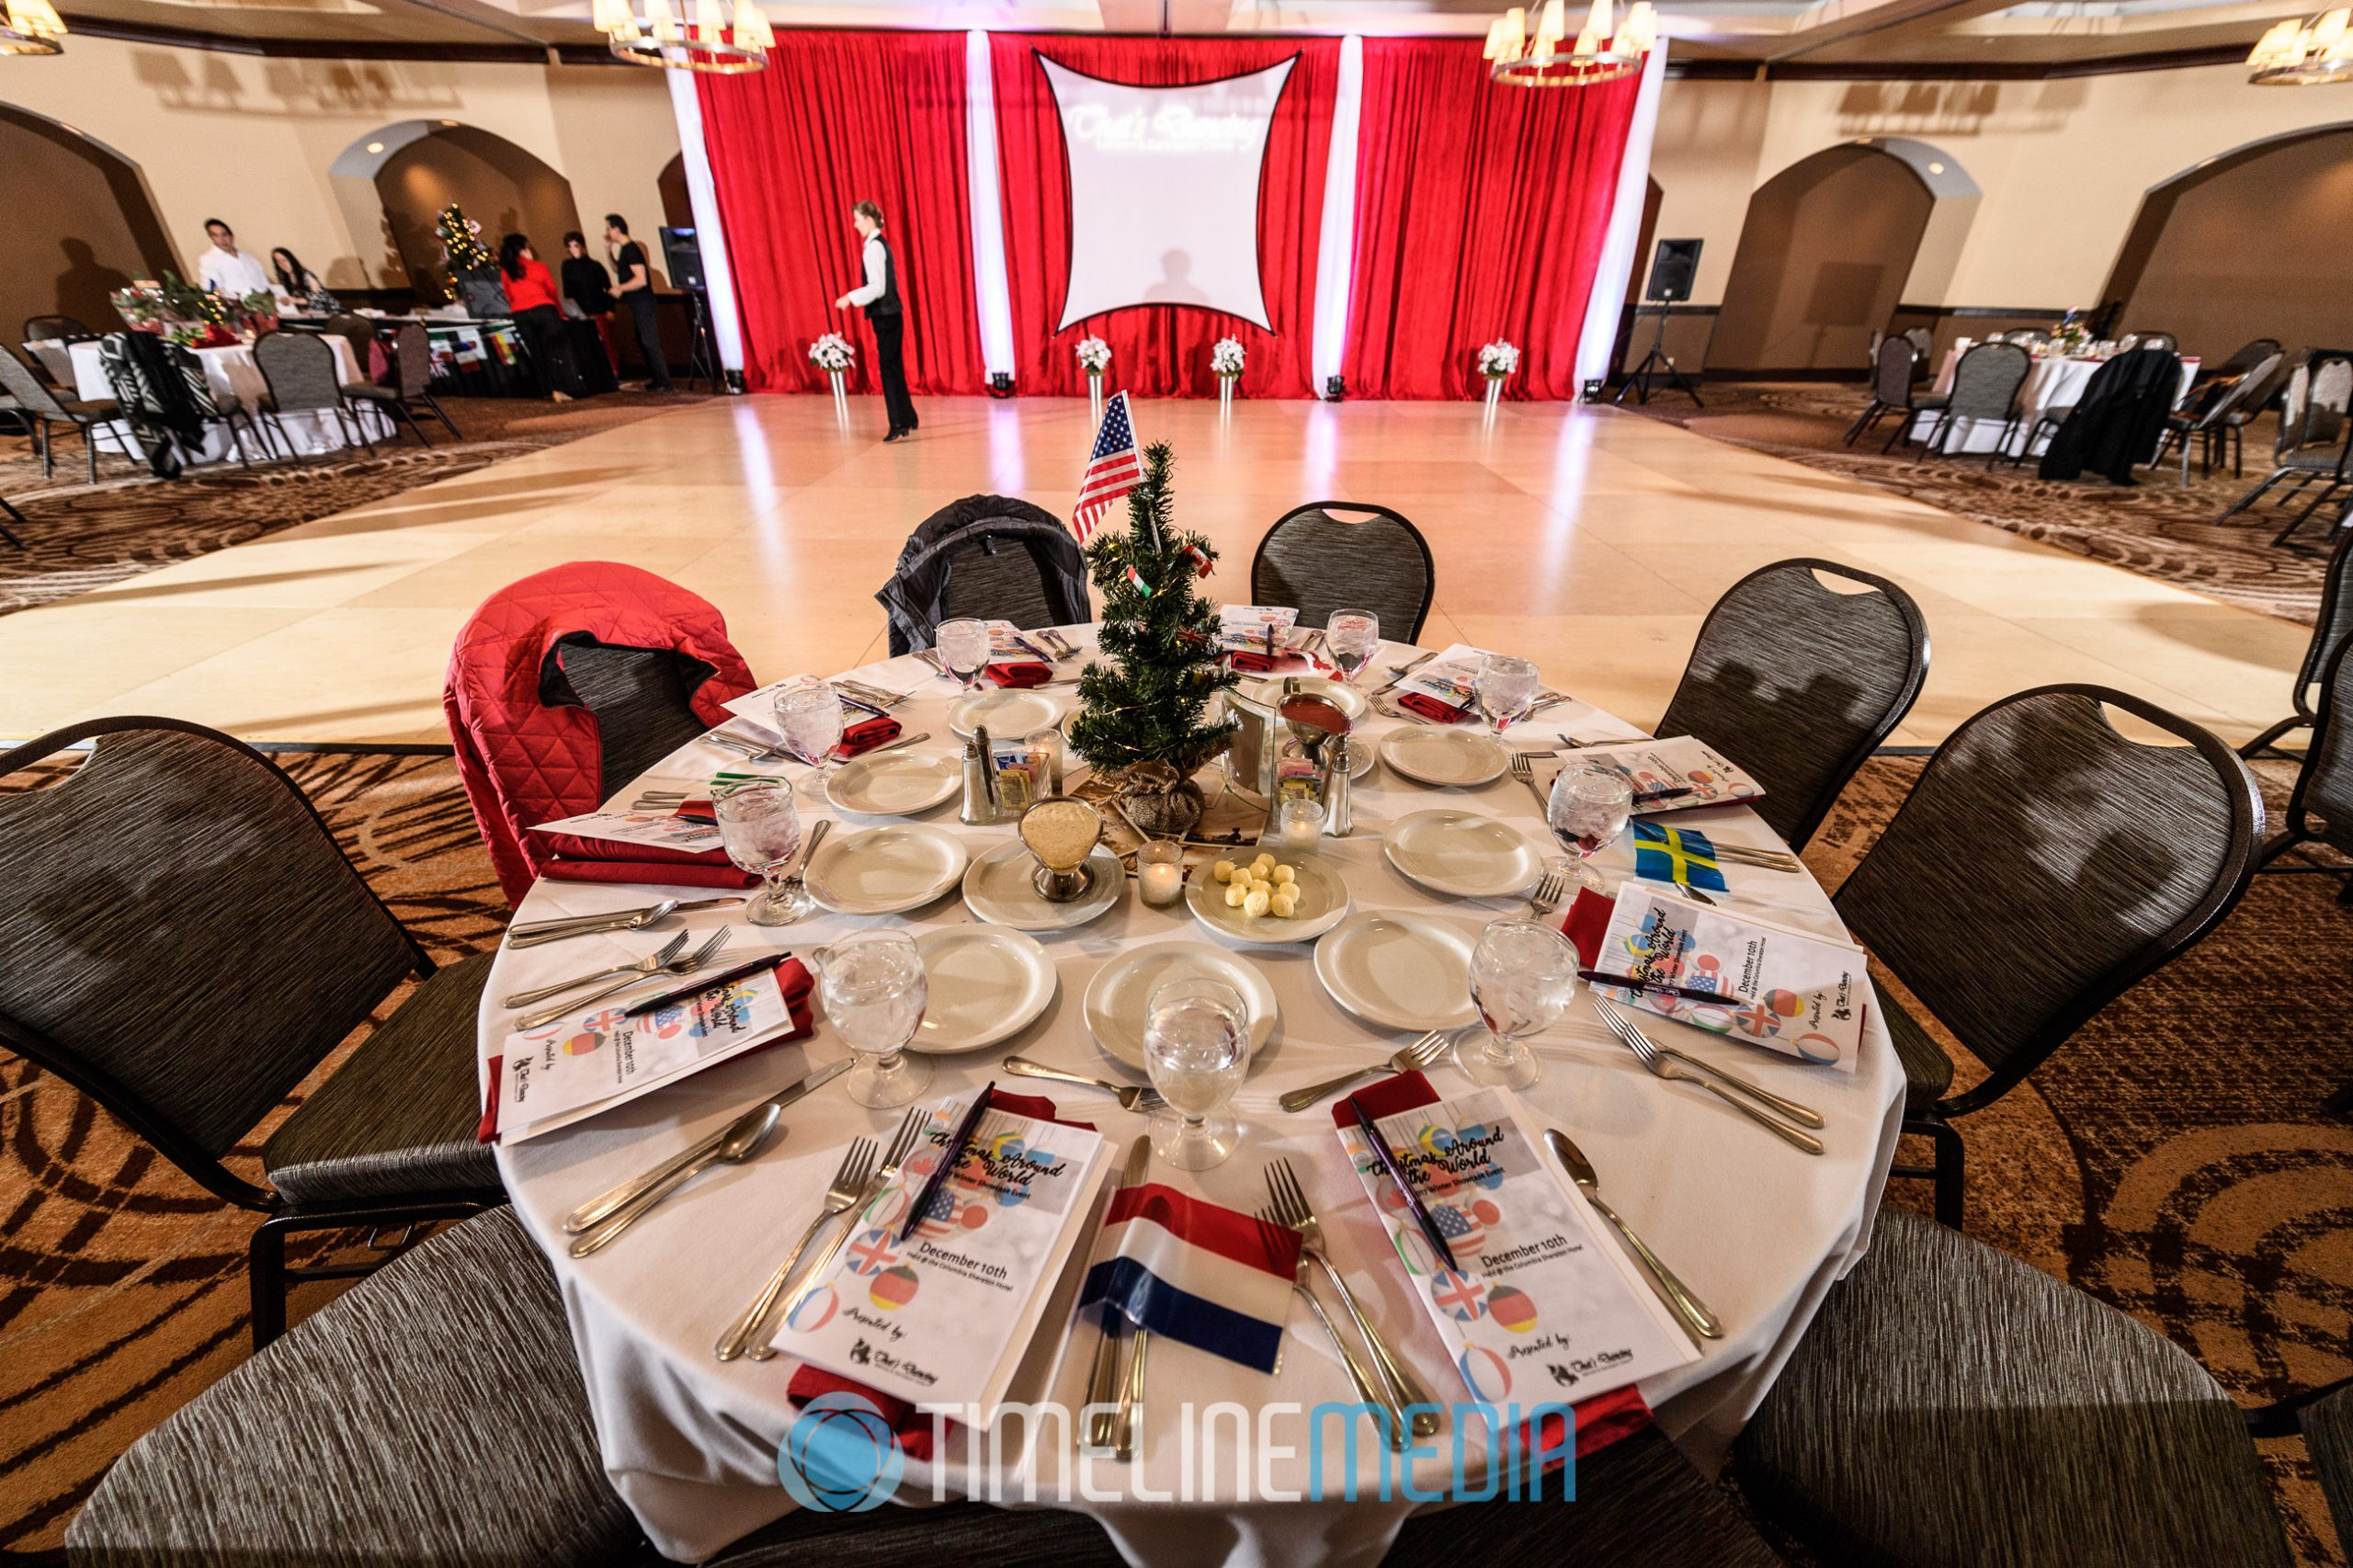 Ballroom set for the 2017 That's Dancing Winter Showcase at the Sheraton Columbia, Maryland ©TimeLine Media